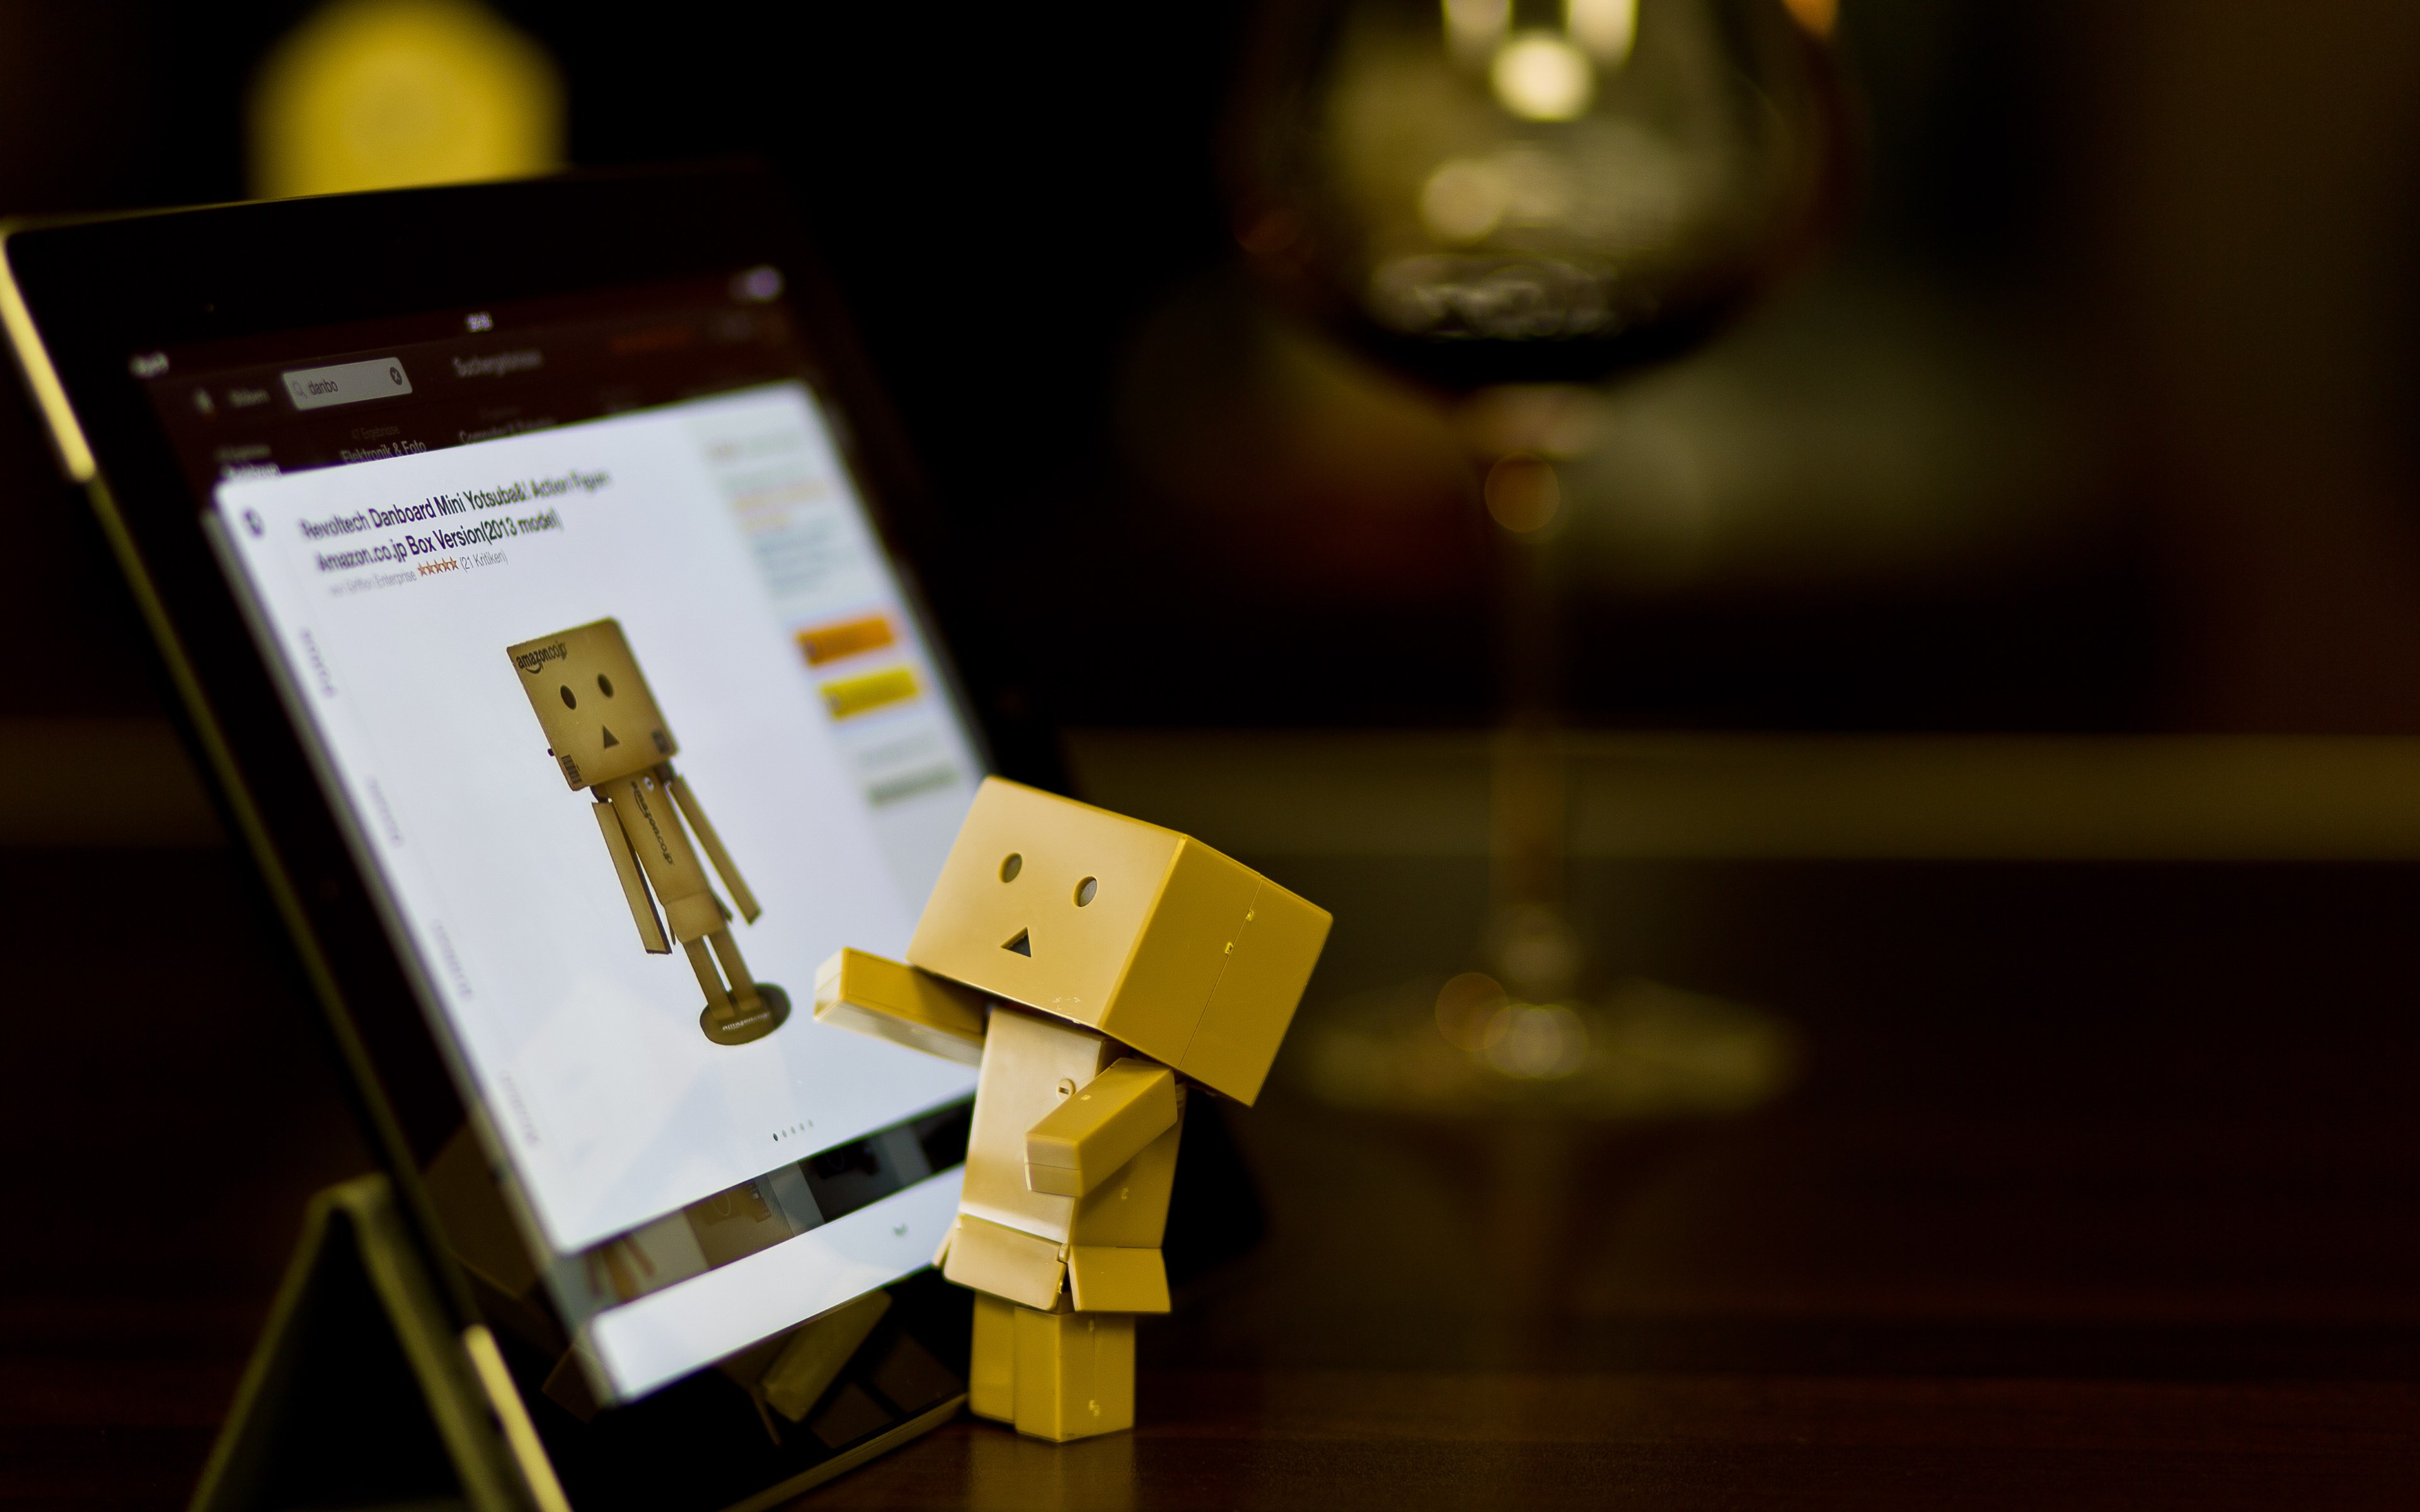 Danbo with tablet | 3840x2400 wallpaper